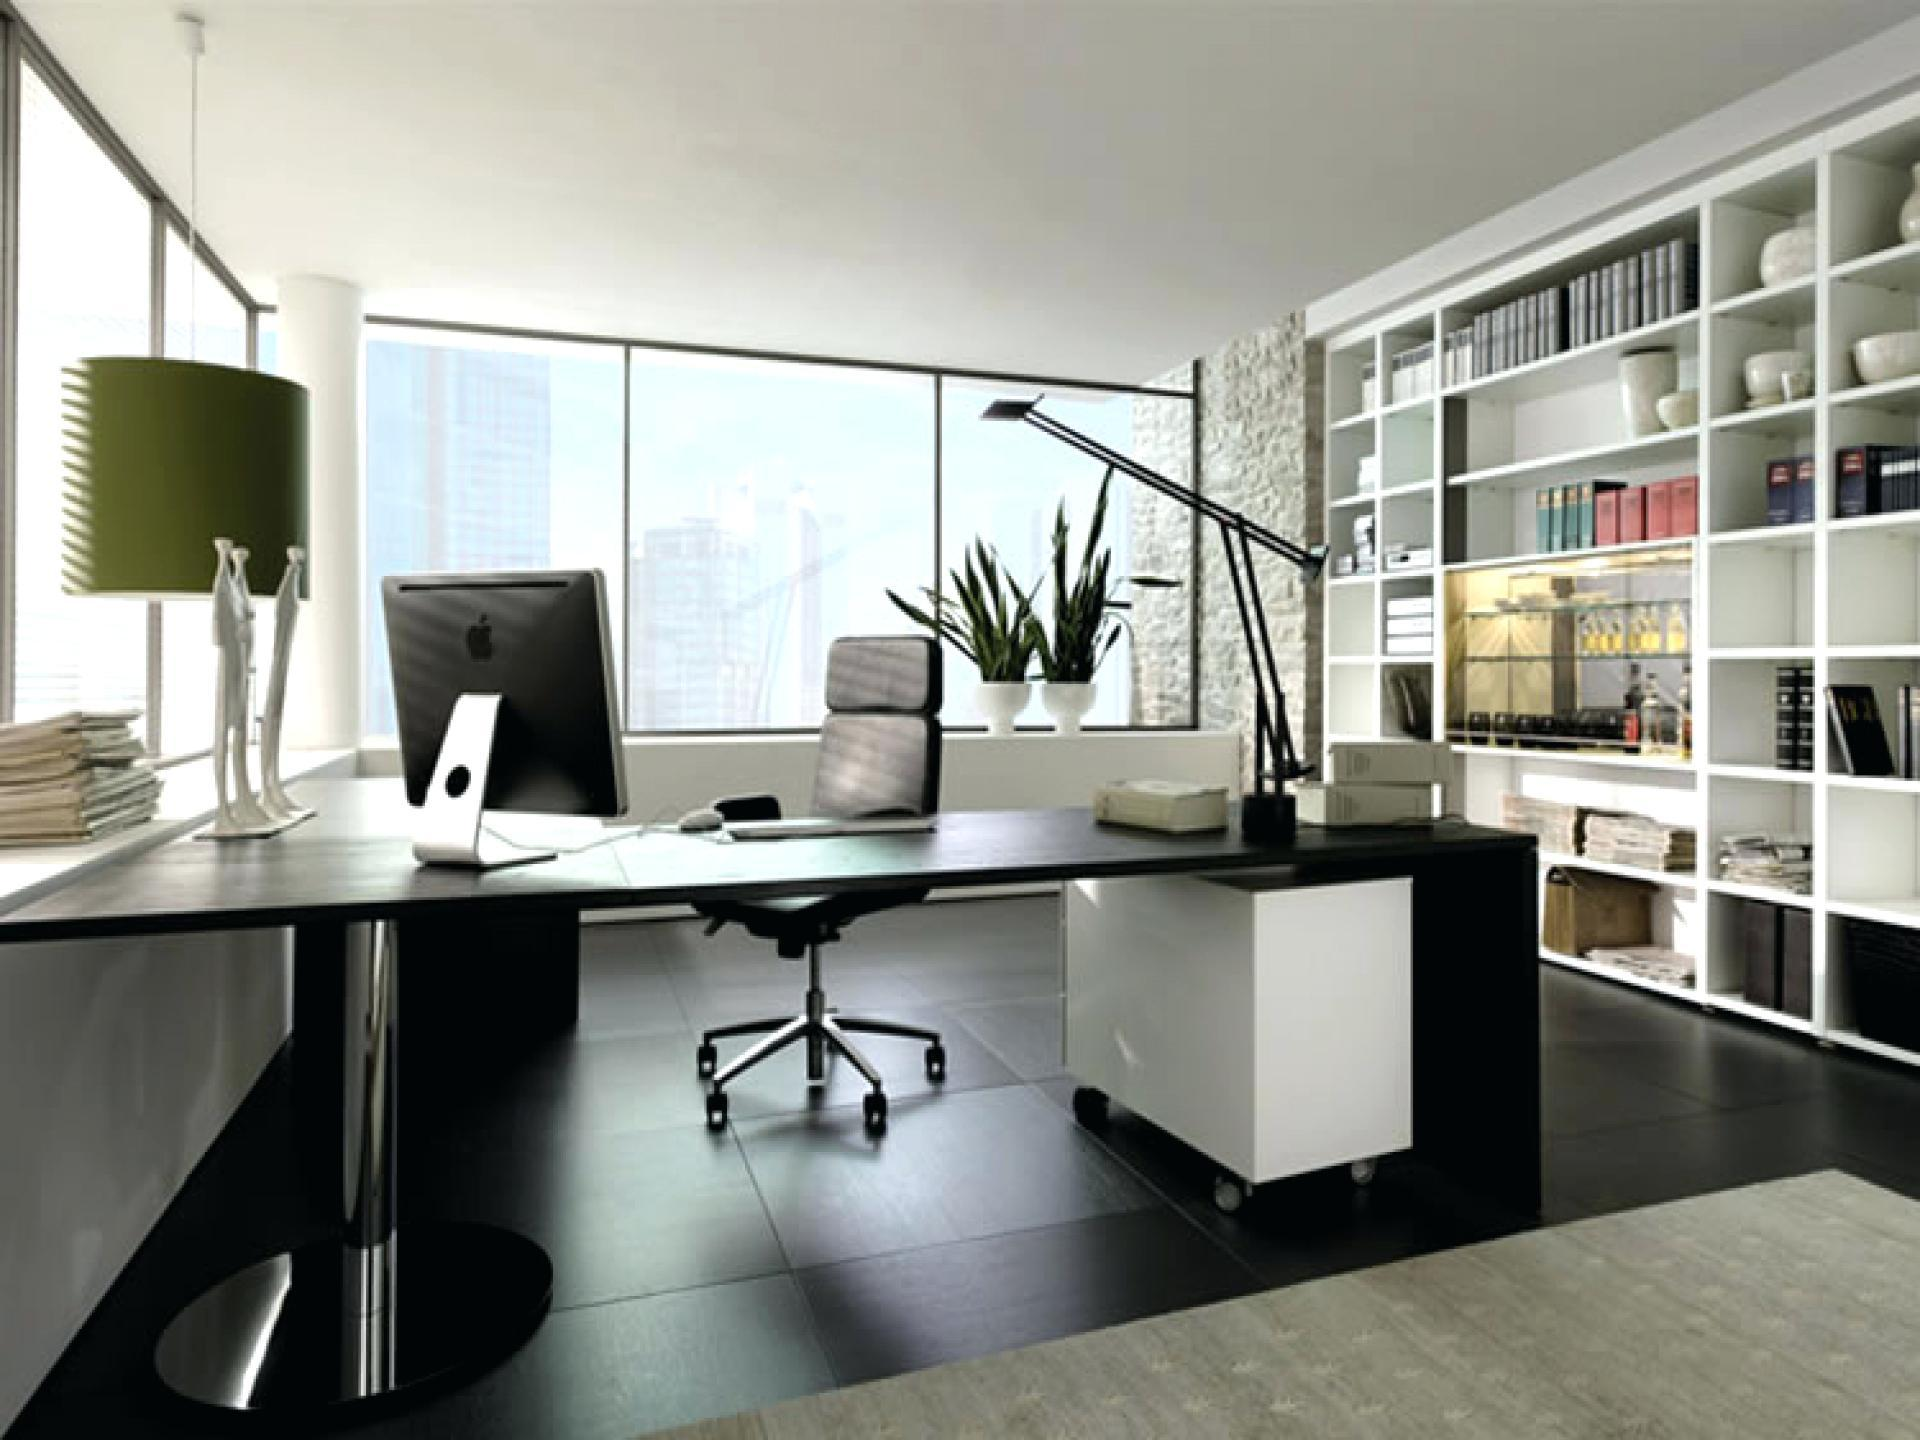 office ınterior design regaling office design minimalist office interior design minimalist home office TERKNYT